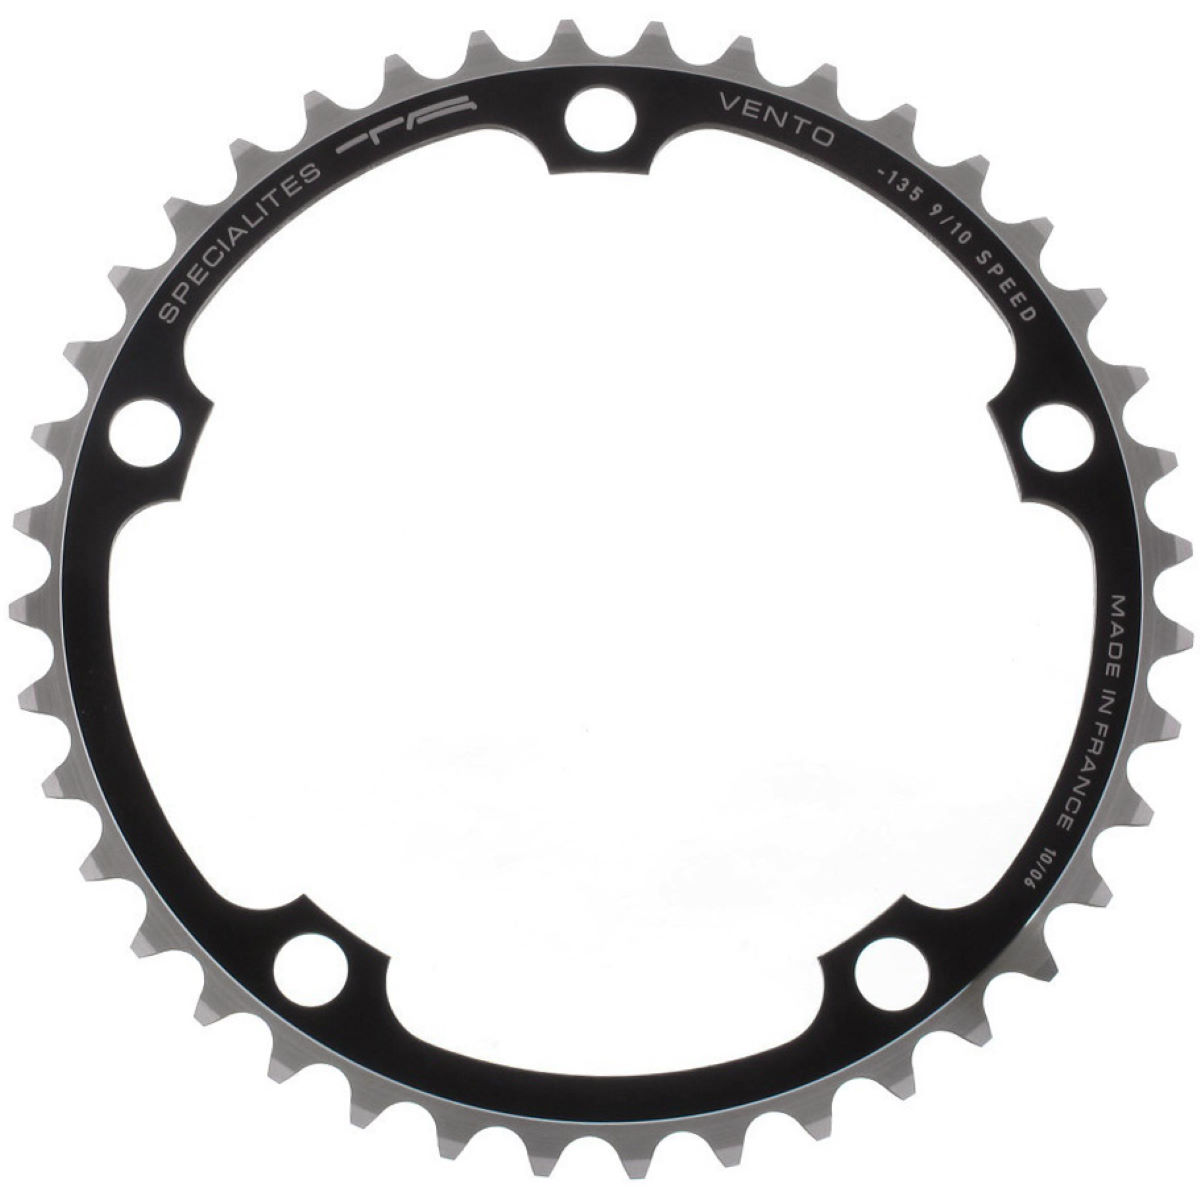 TA TA 135 PCD Vento Campagnolo Inner Chainring 39-43T   Chain Rings